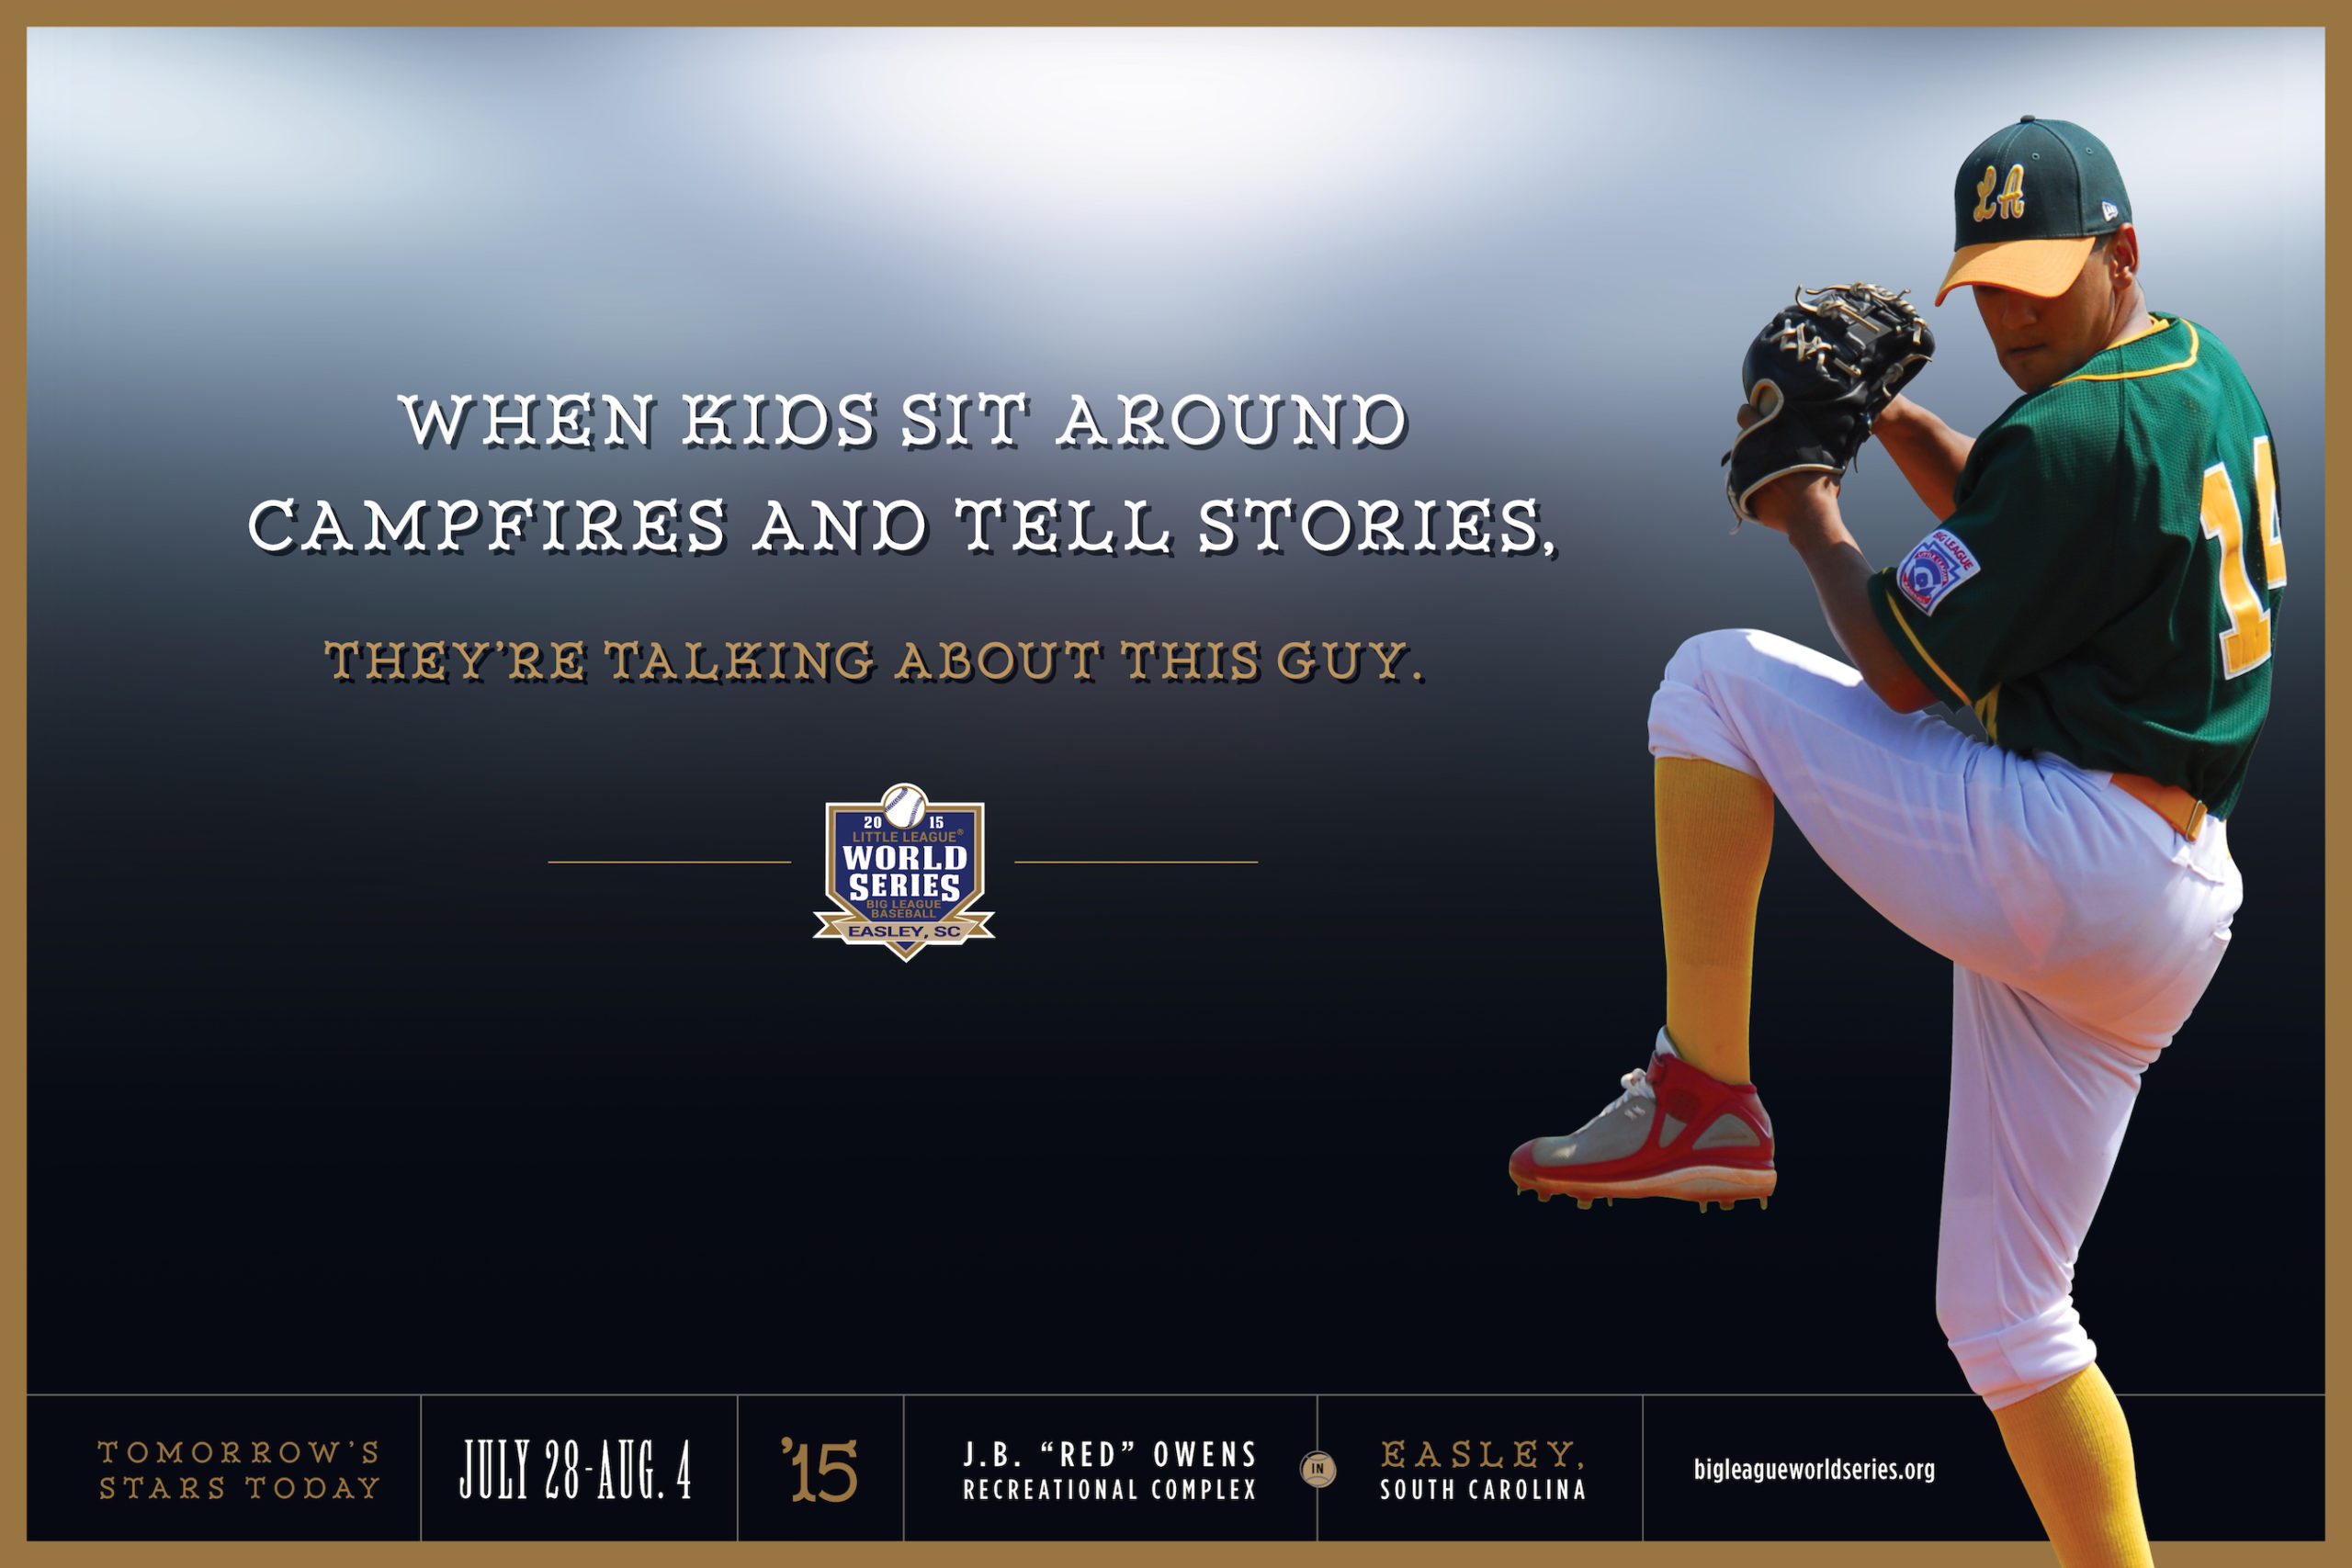 Big-League-World-Series-baseball-poster-advertising-copywriting-Lochness-Marketing-campfire